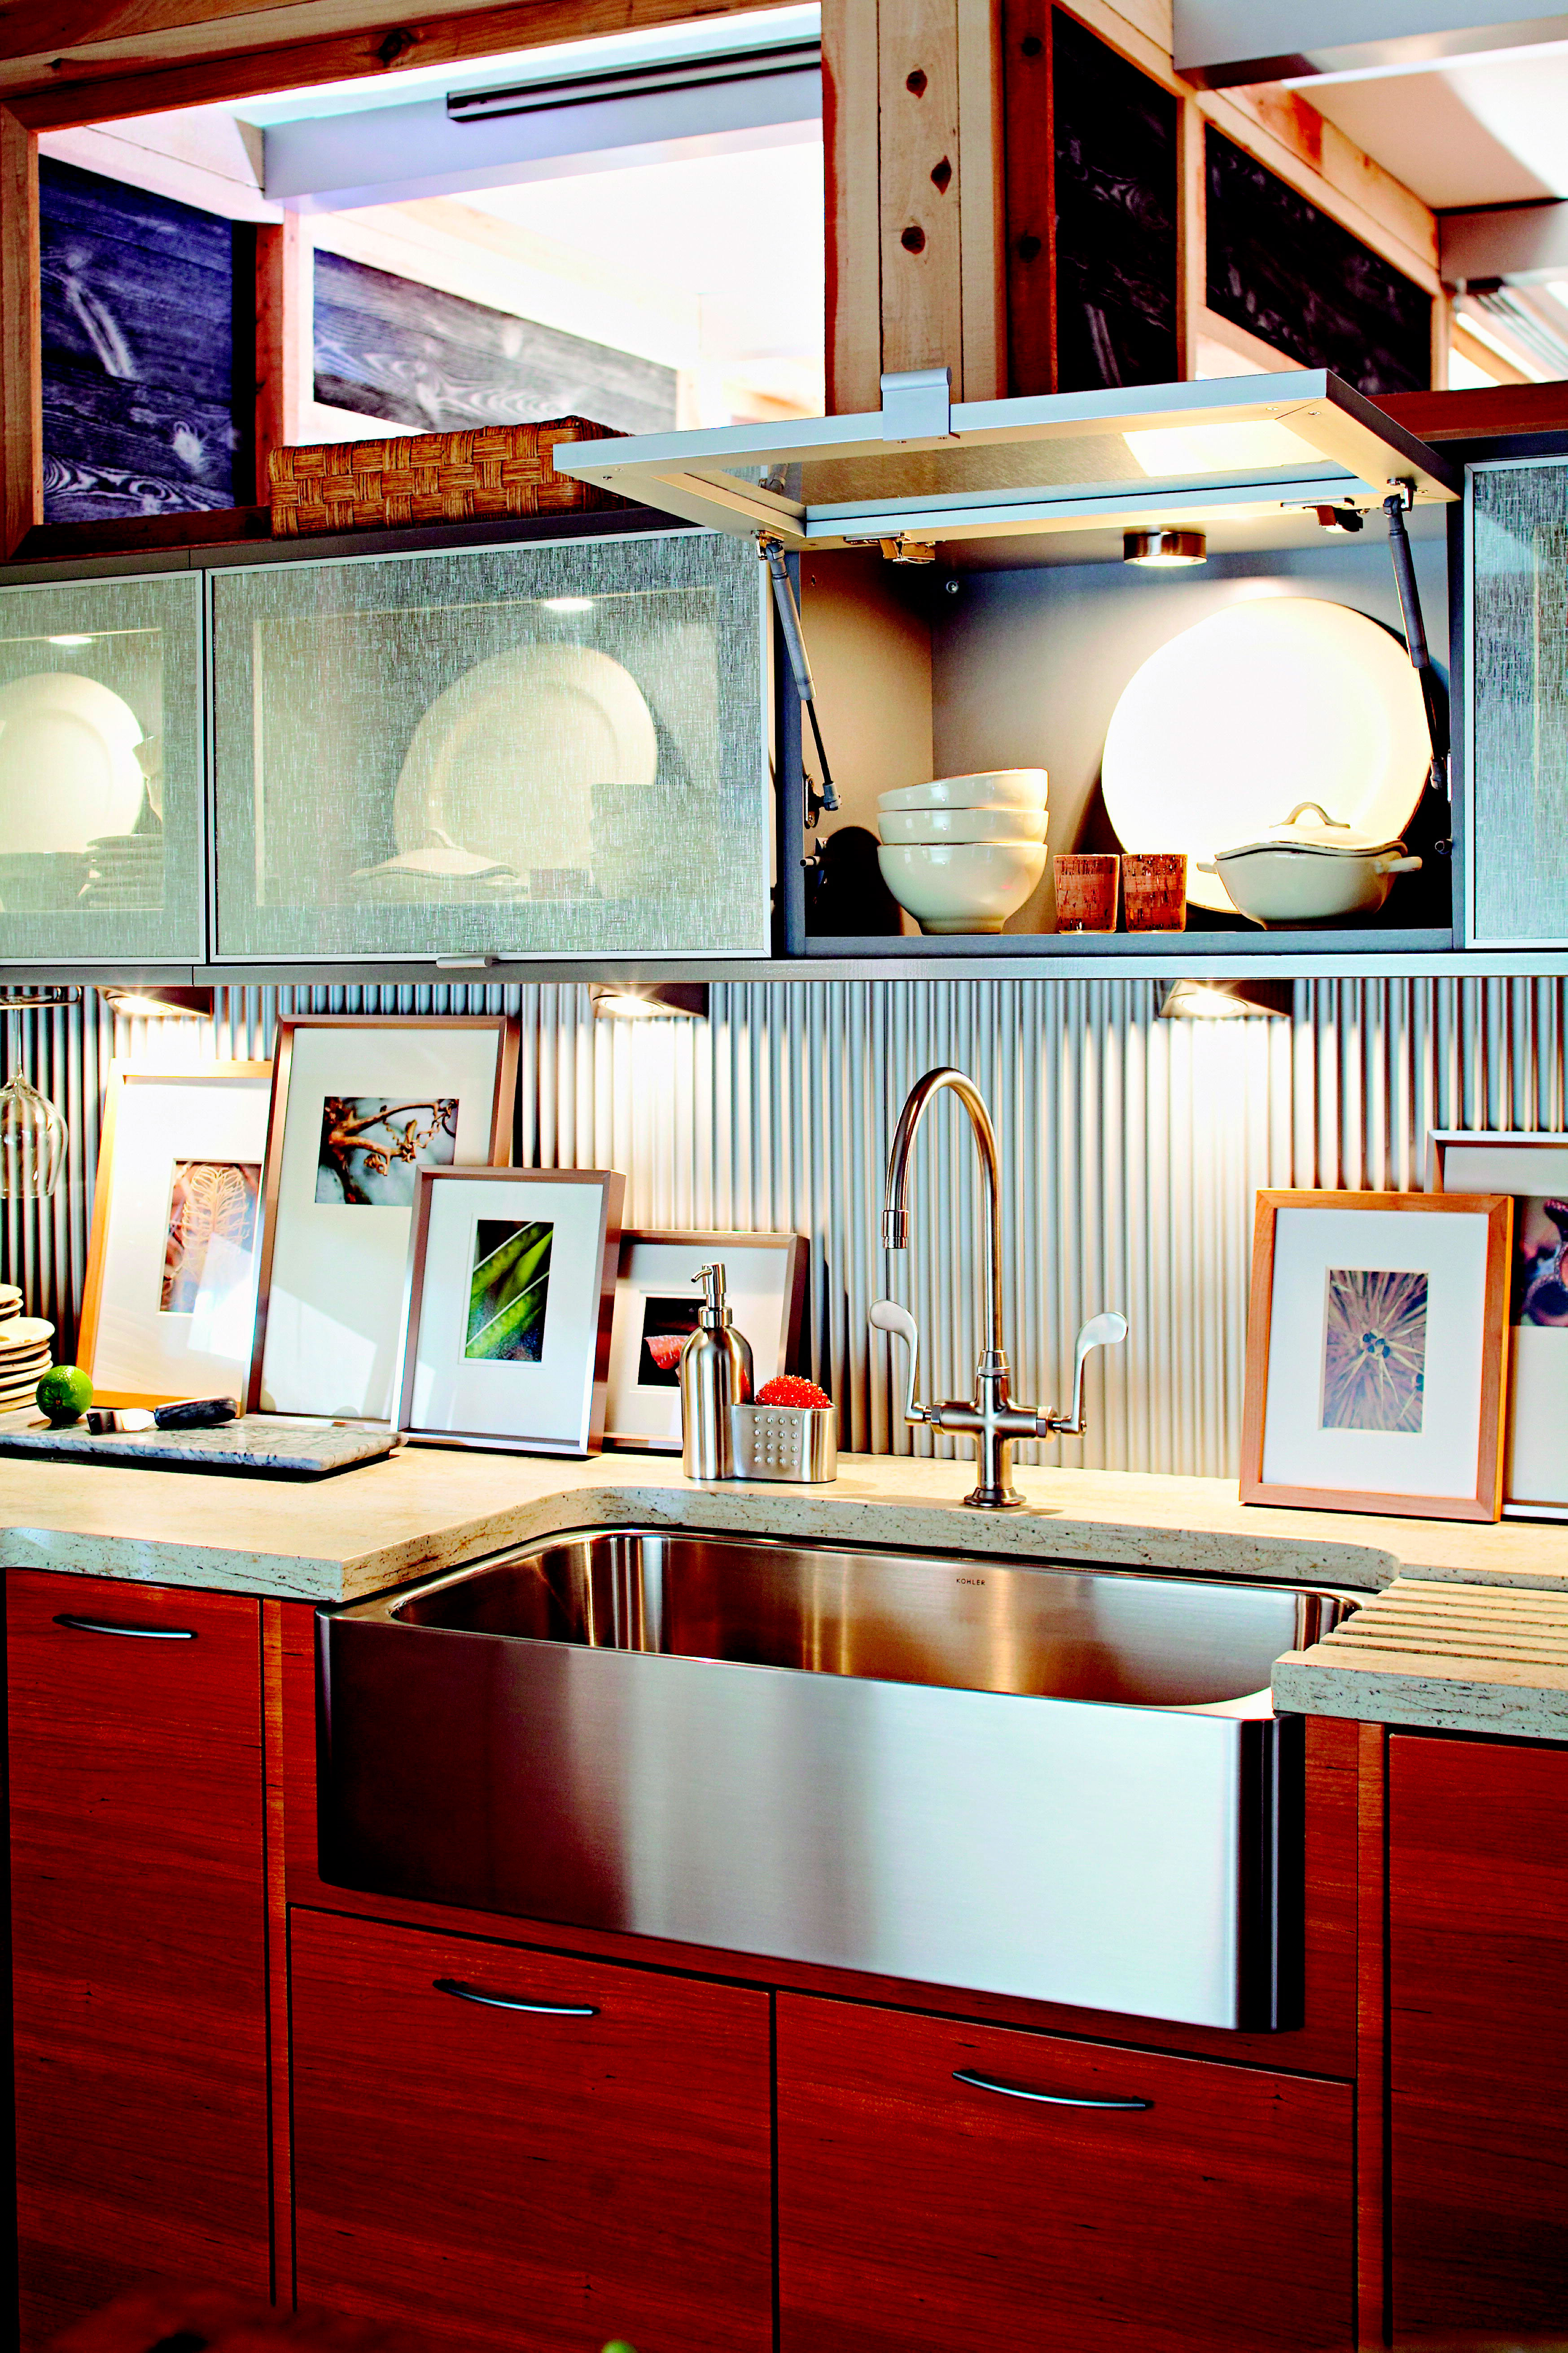 25 Ideas for Kitchen Cabinet Makeovers | Midwest Living